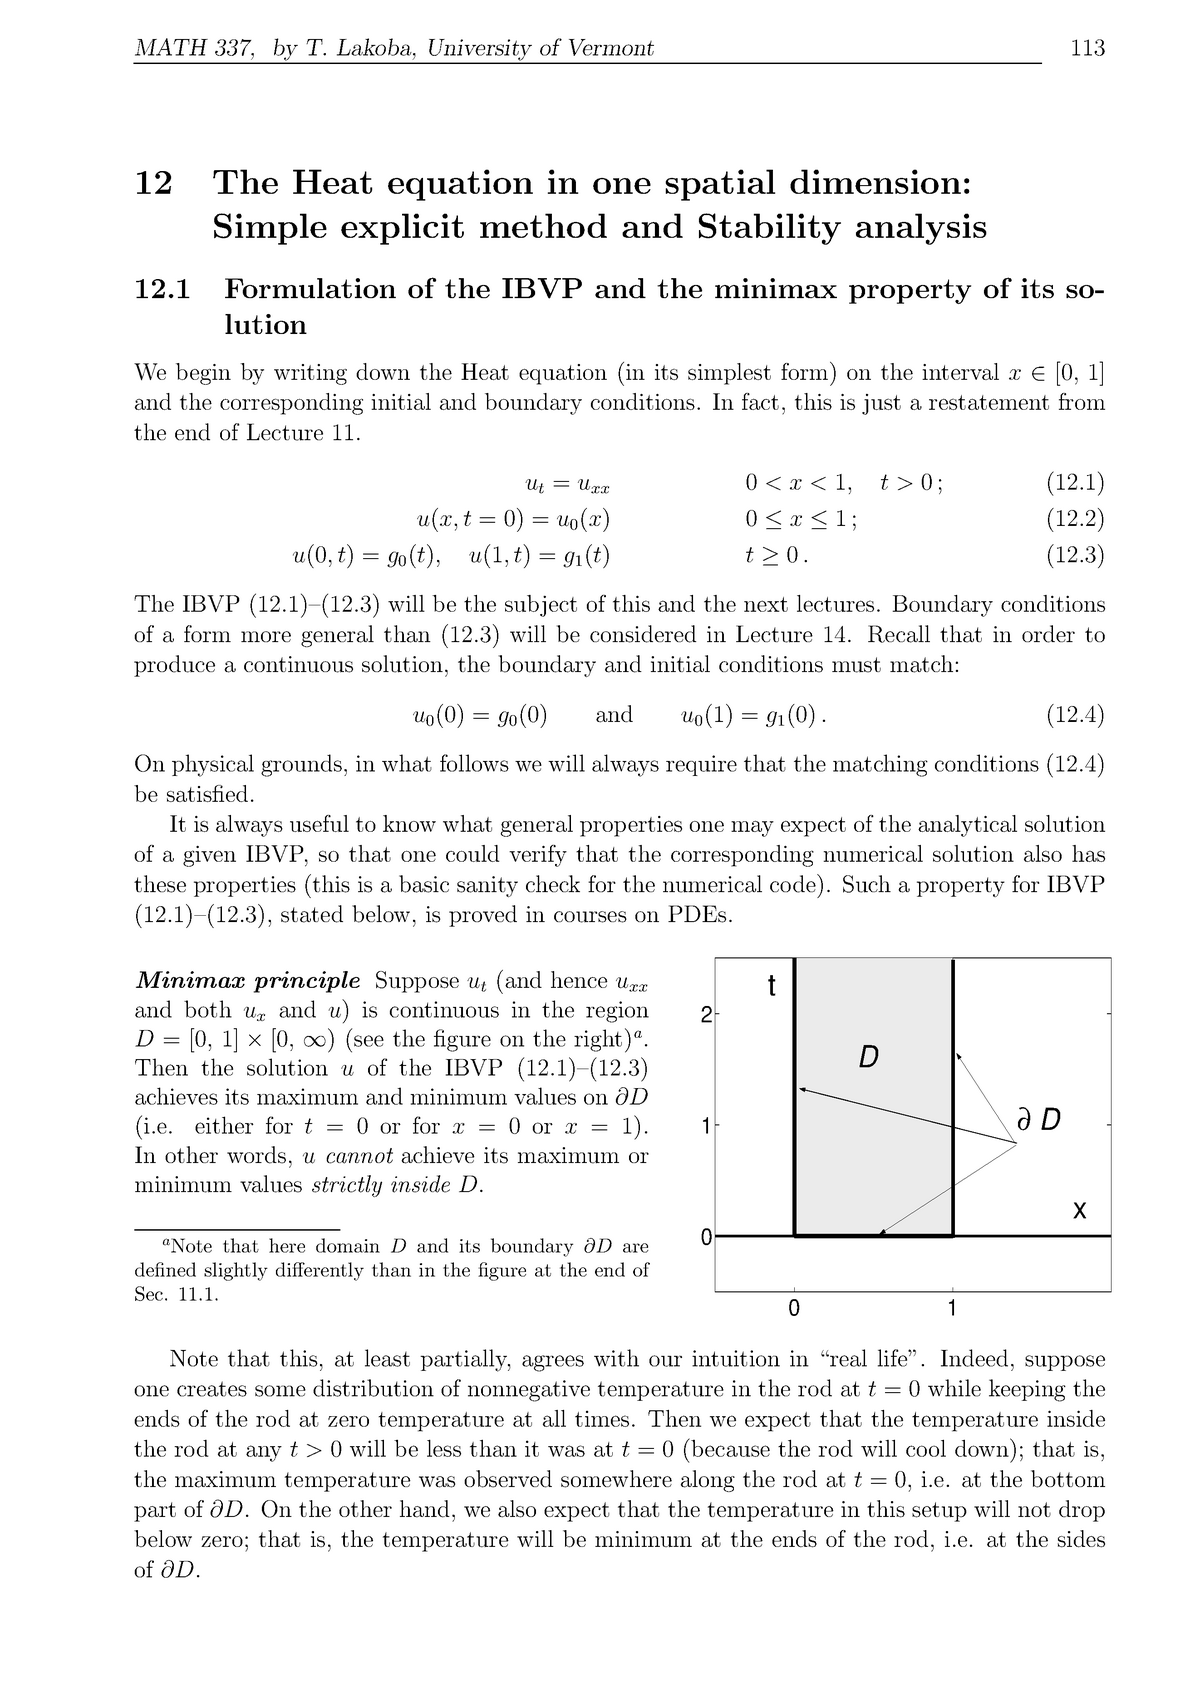 MATH 337 2011-2012 Lecture Notes 12 - The Heat equation in